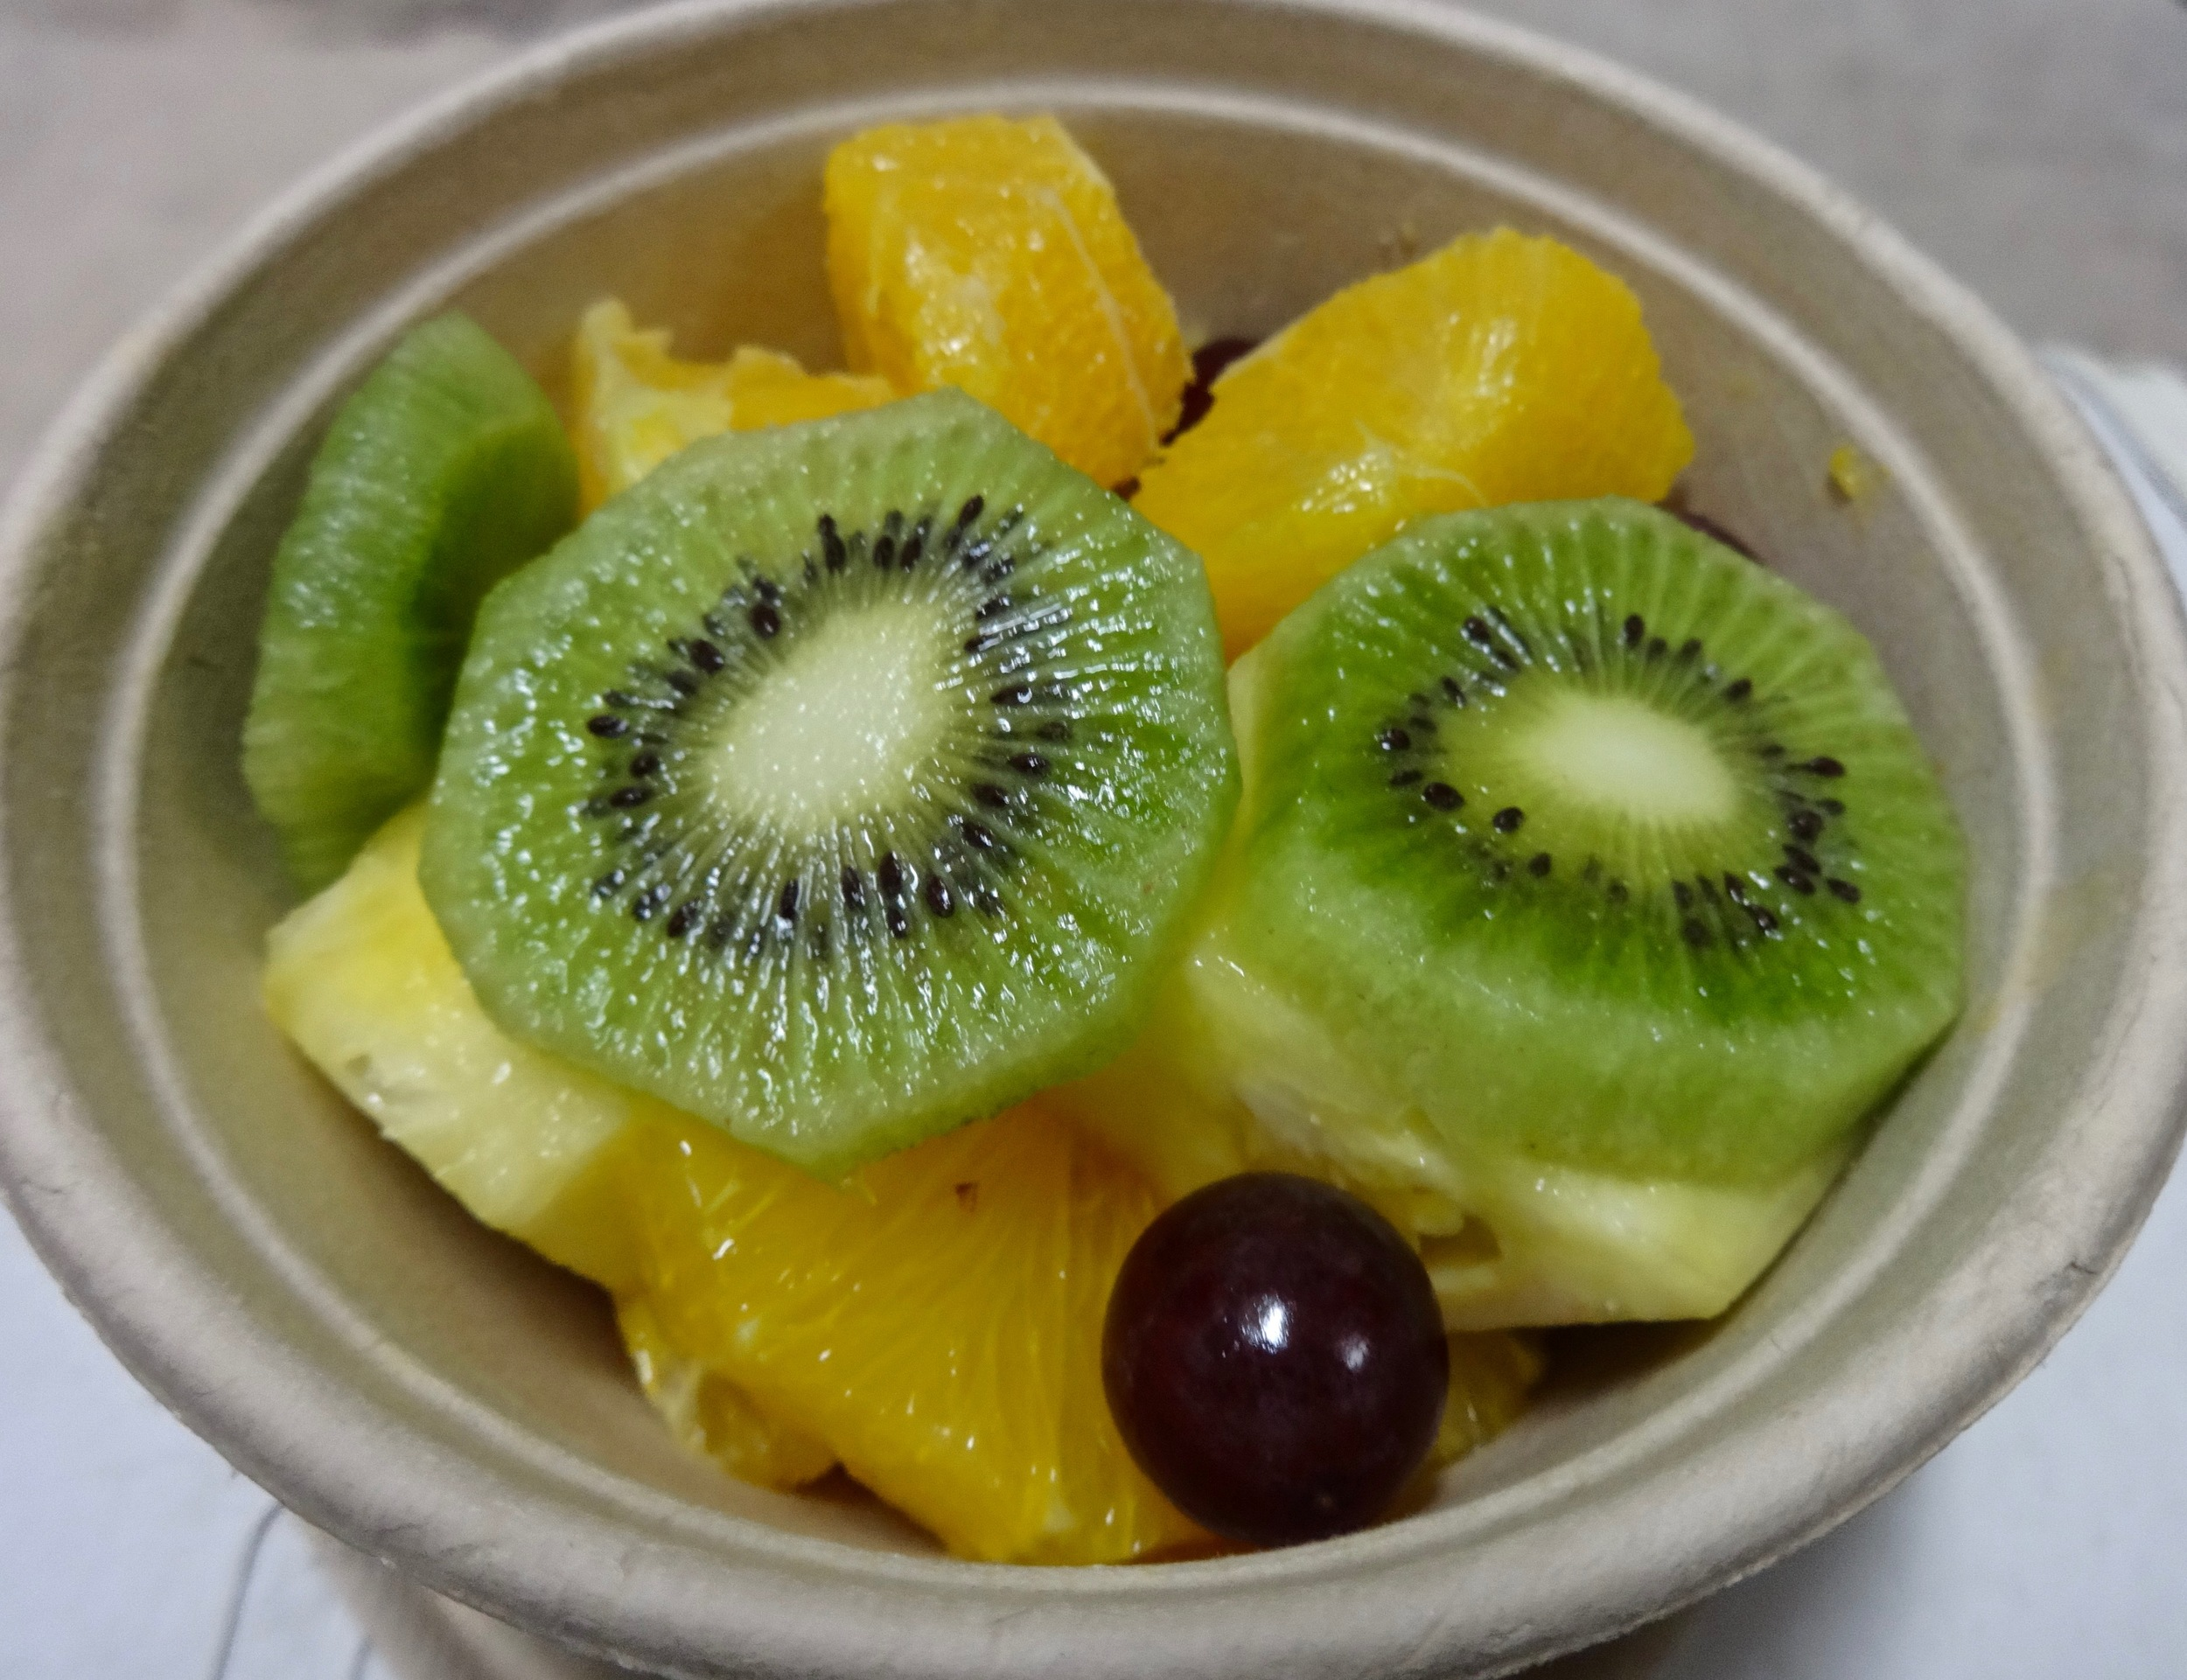 mixed fruit bowl from Little Skillet